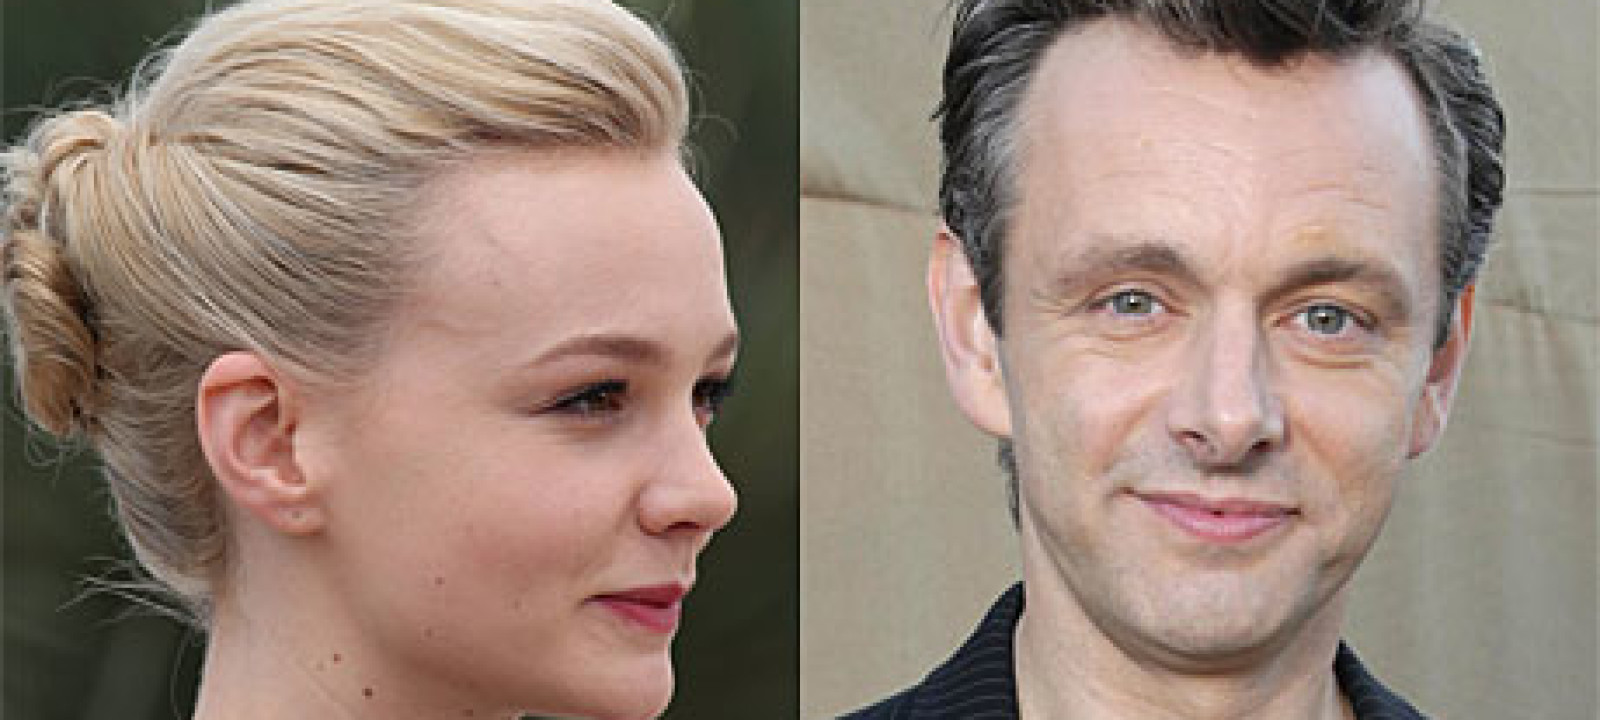 Carey Mulligan and Michael Sheen